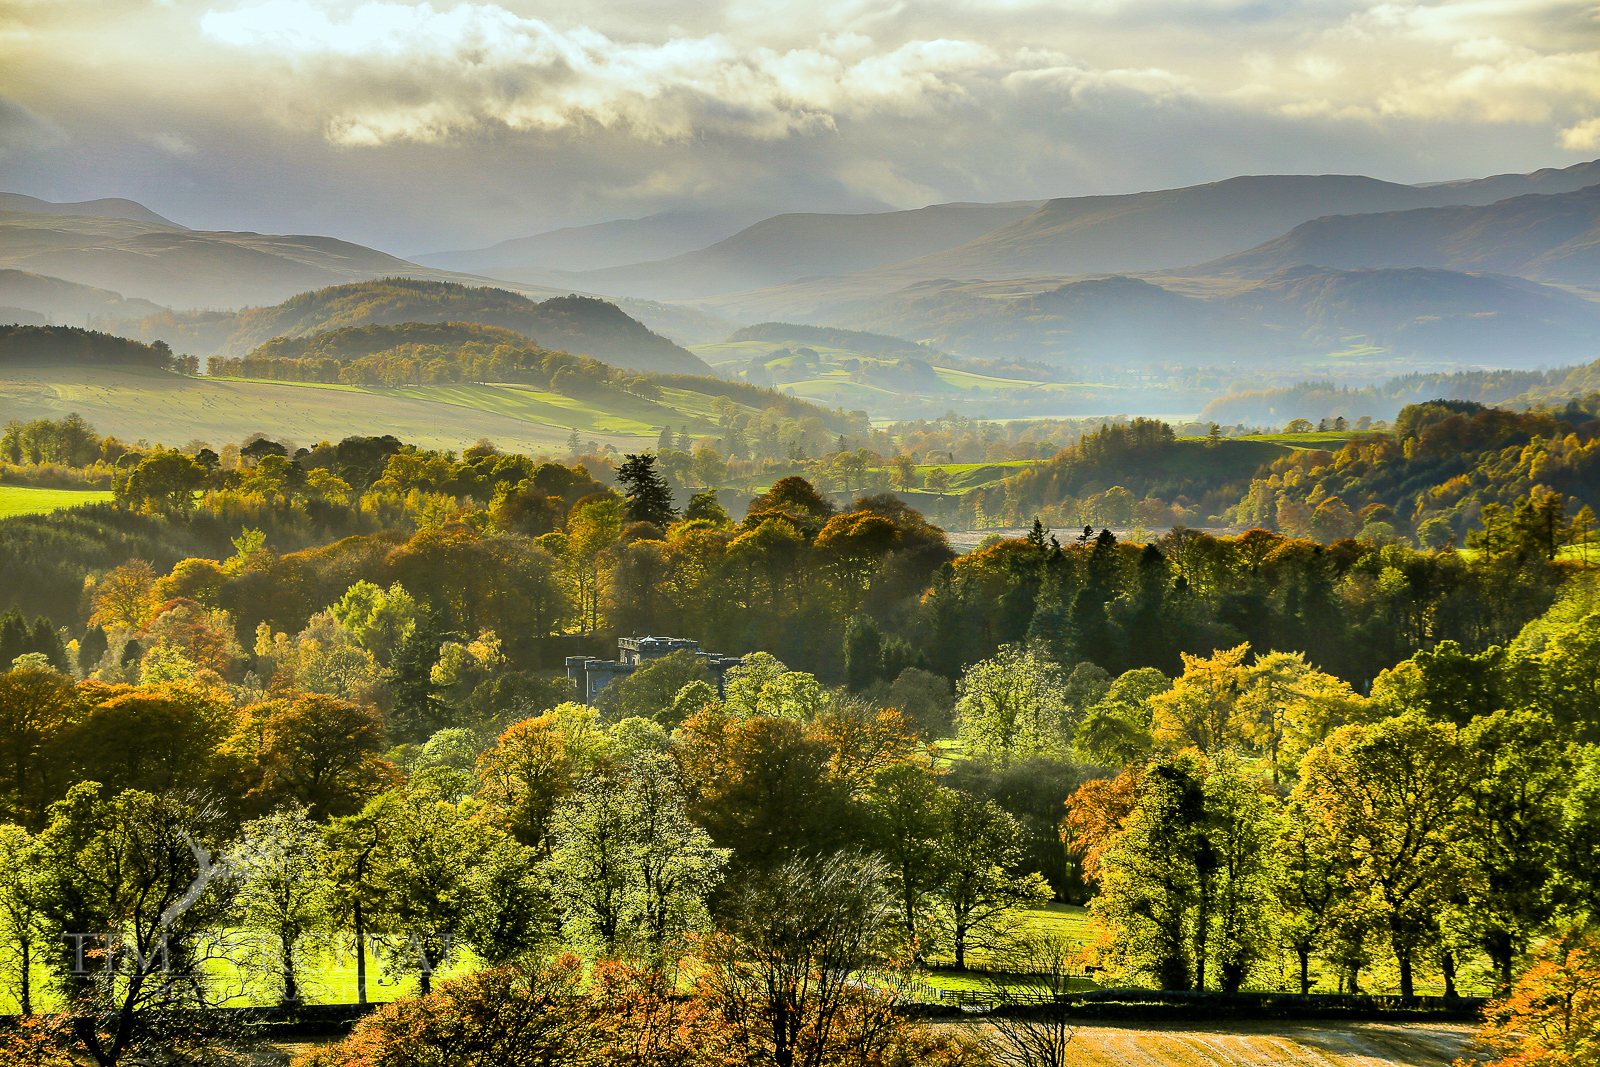 Autumn over the valley of Ochtertyre overlooking Monzie Castle and the hills of Ben Chonzie.